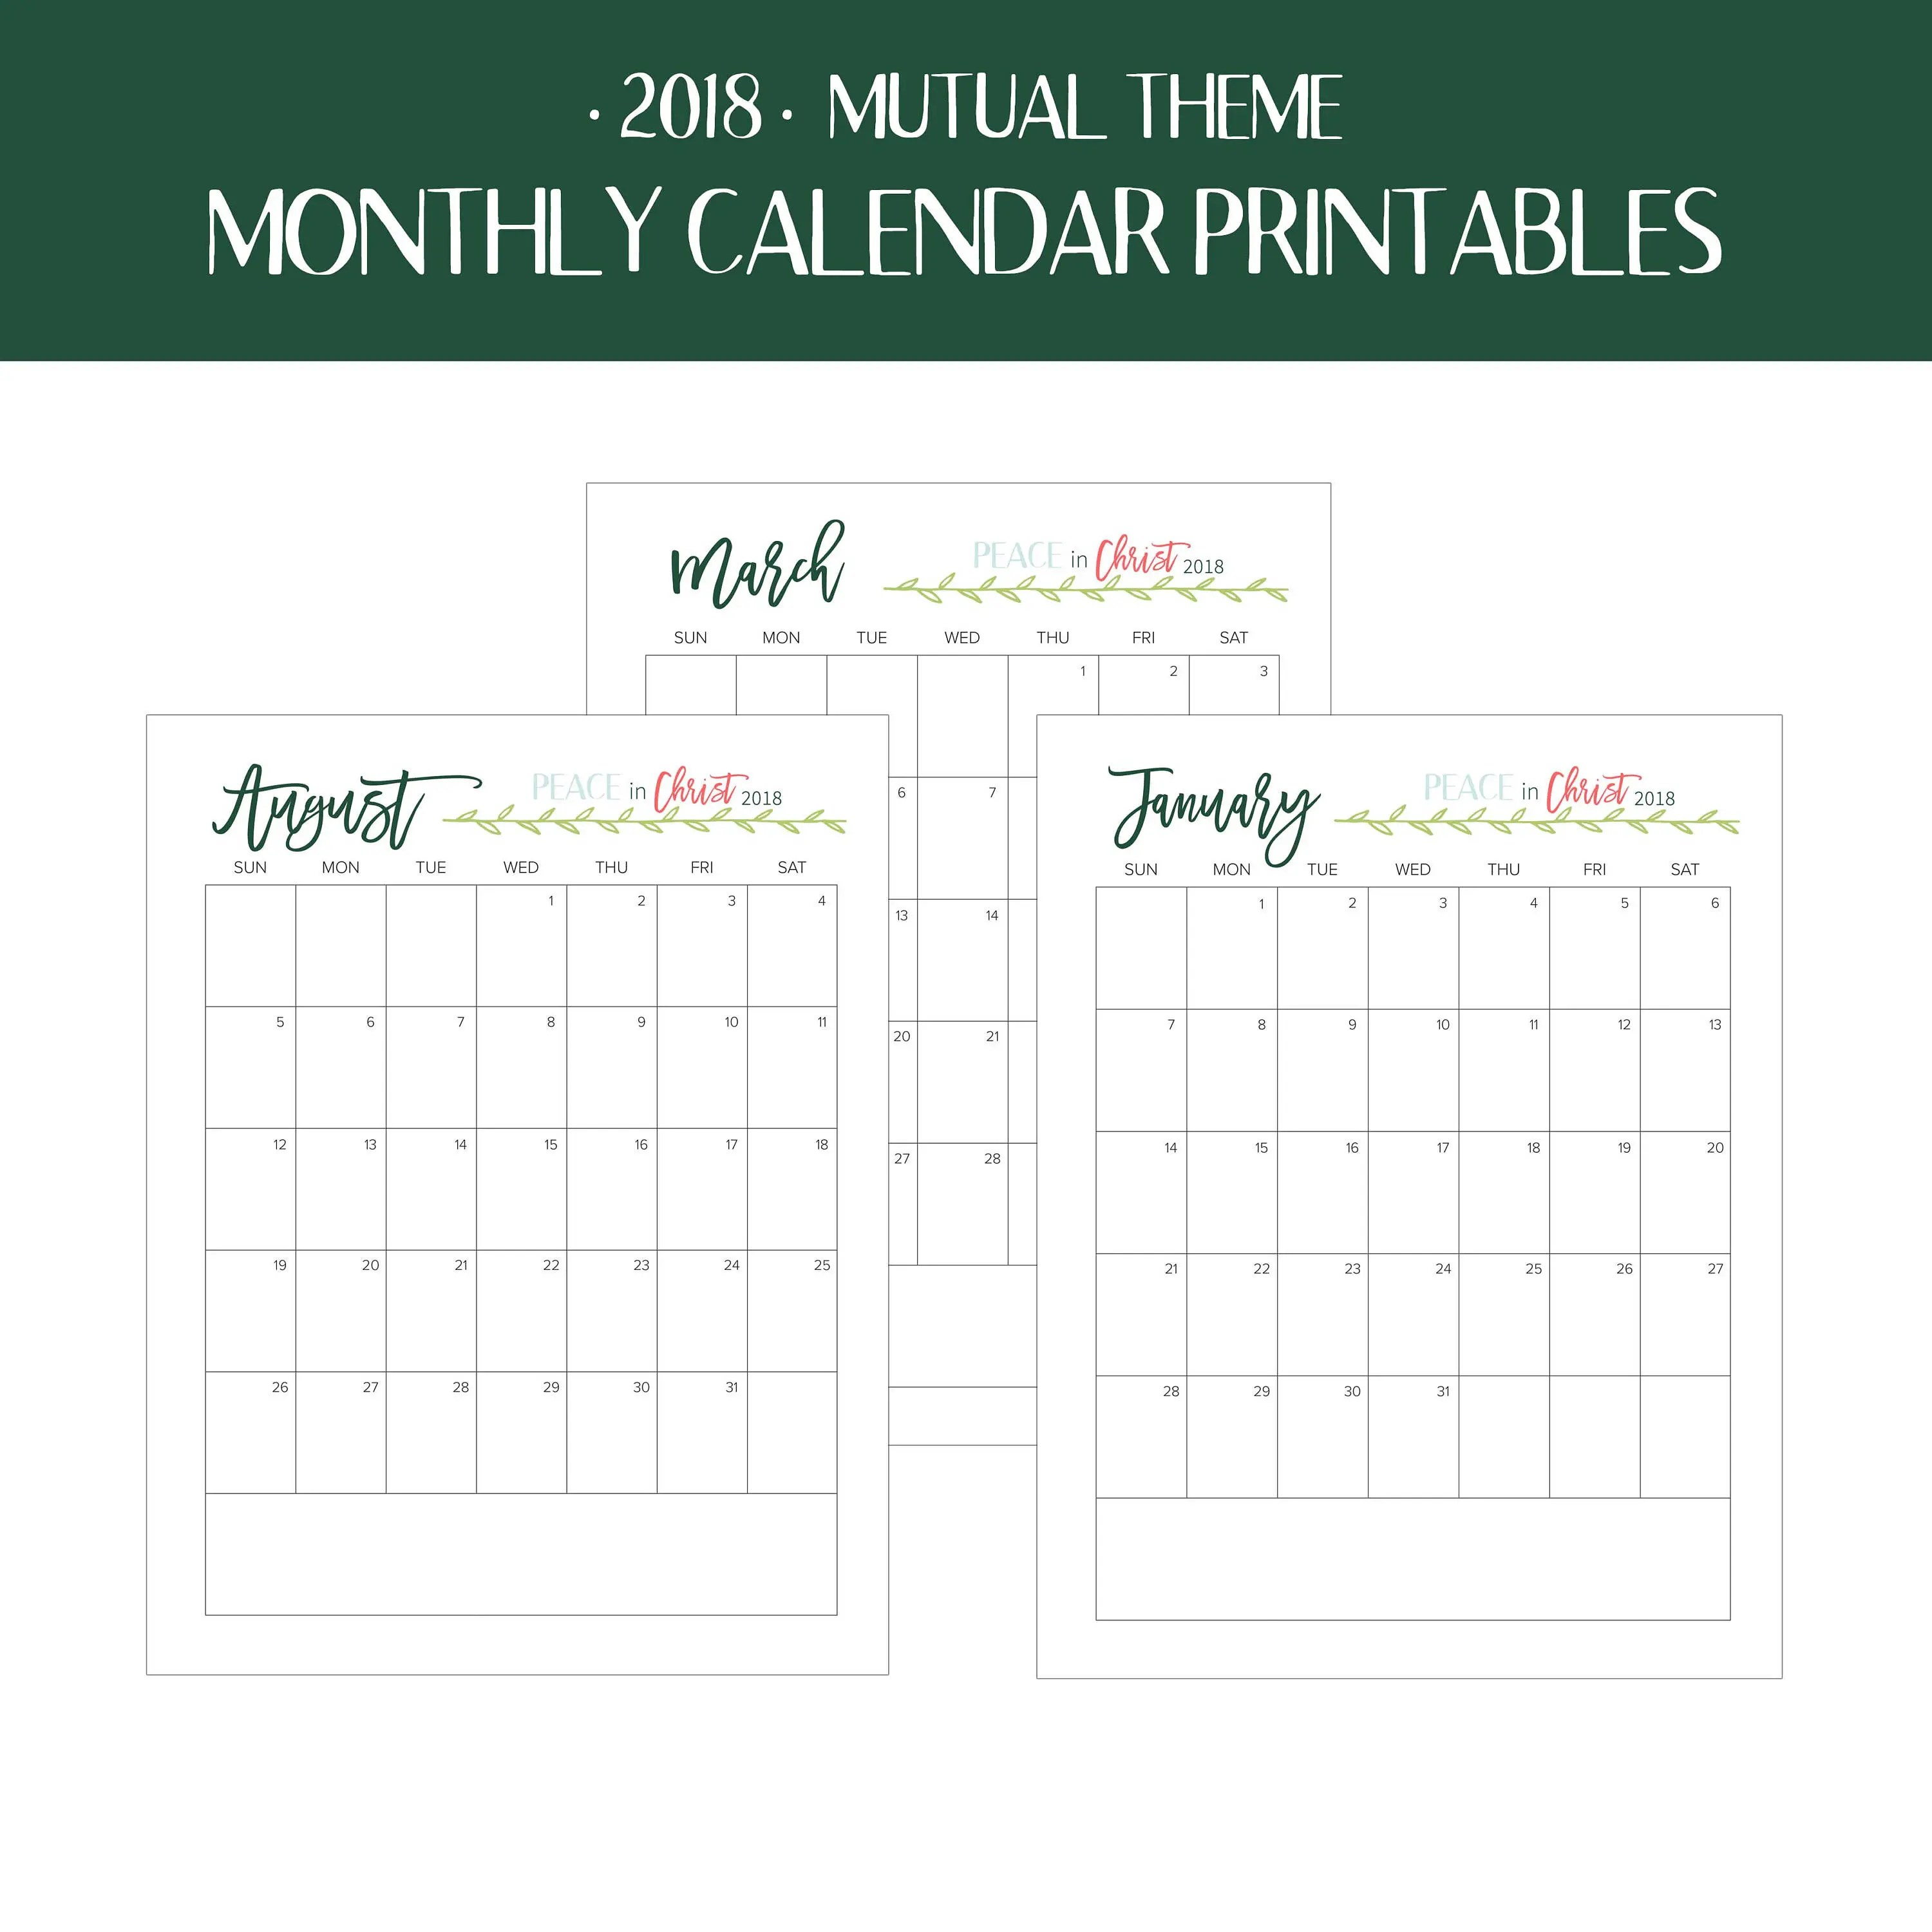 Mutual Theme Calendar Printables Peace In Christ Young